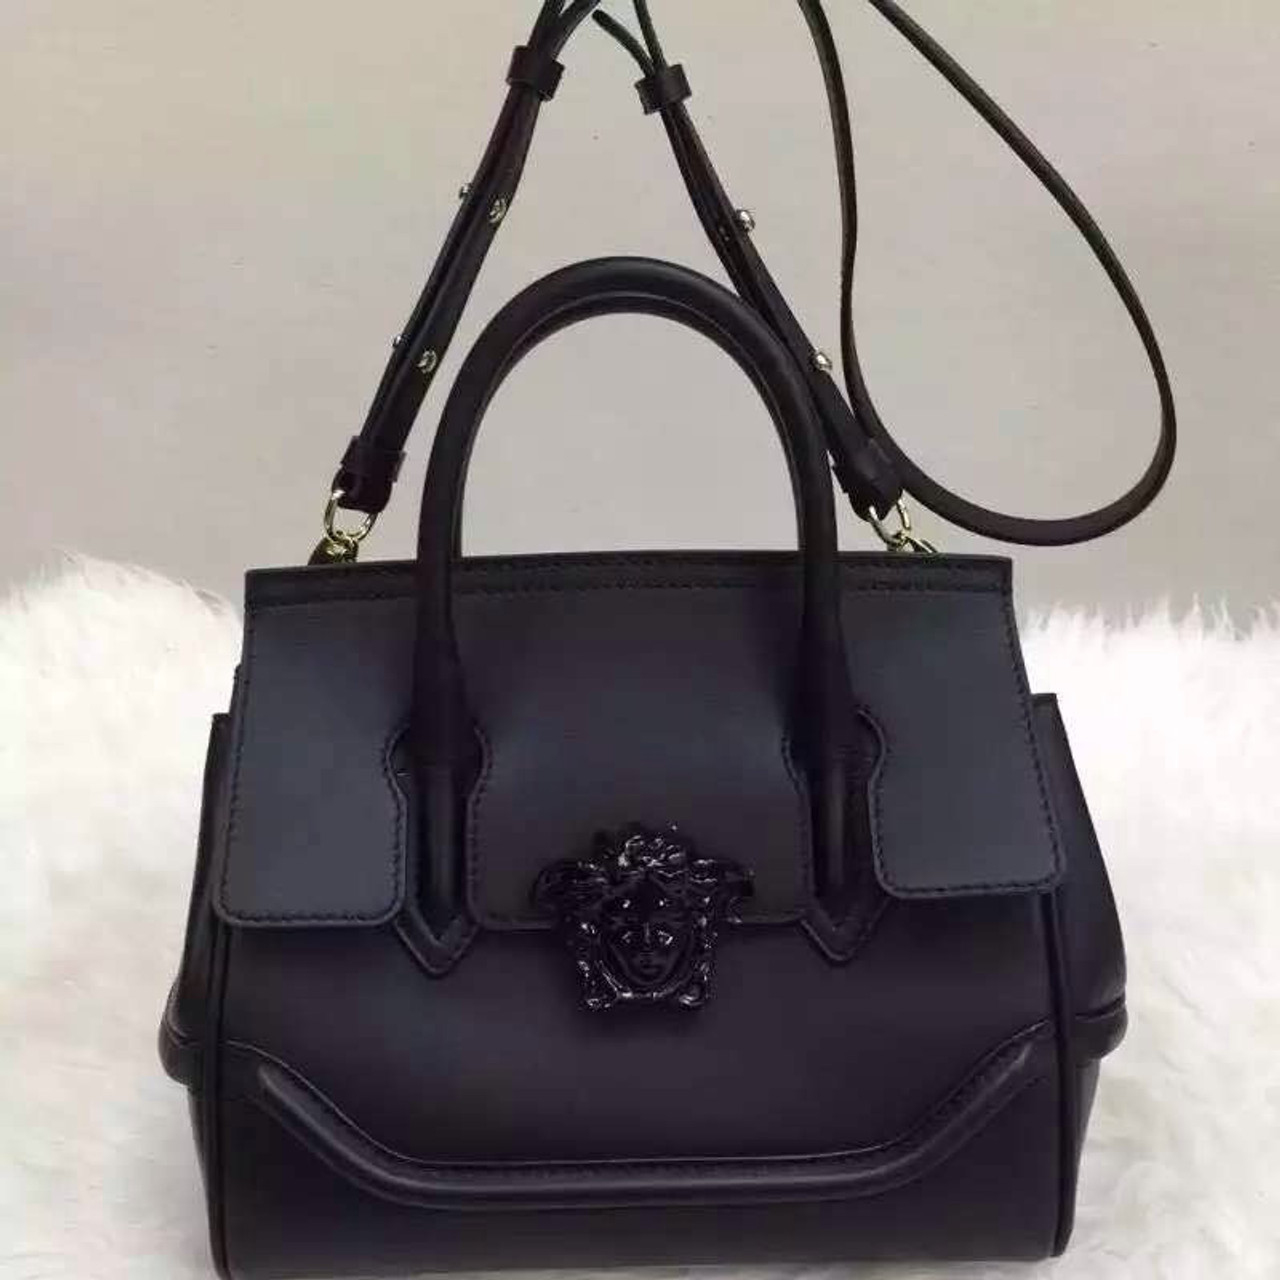 55e8b8116d  Final Sale  Versace Palazzo Empire Leather Bag Medium